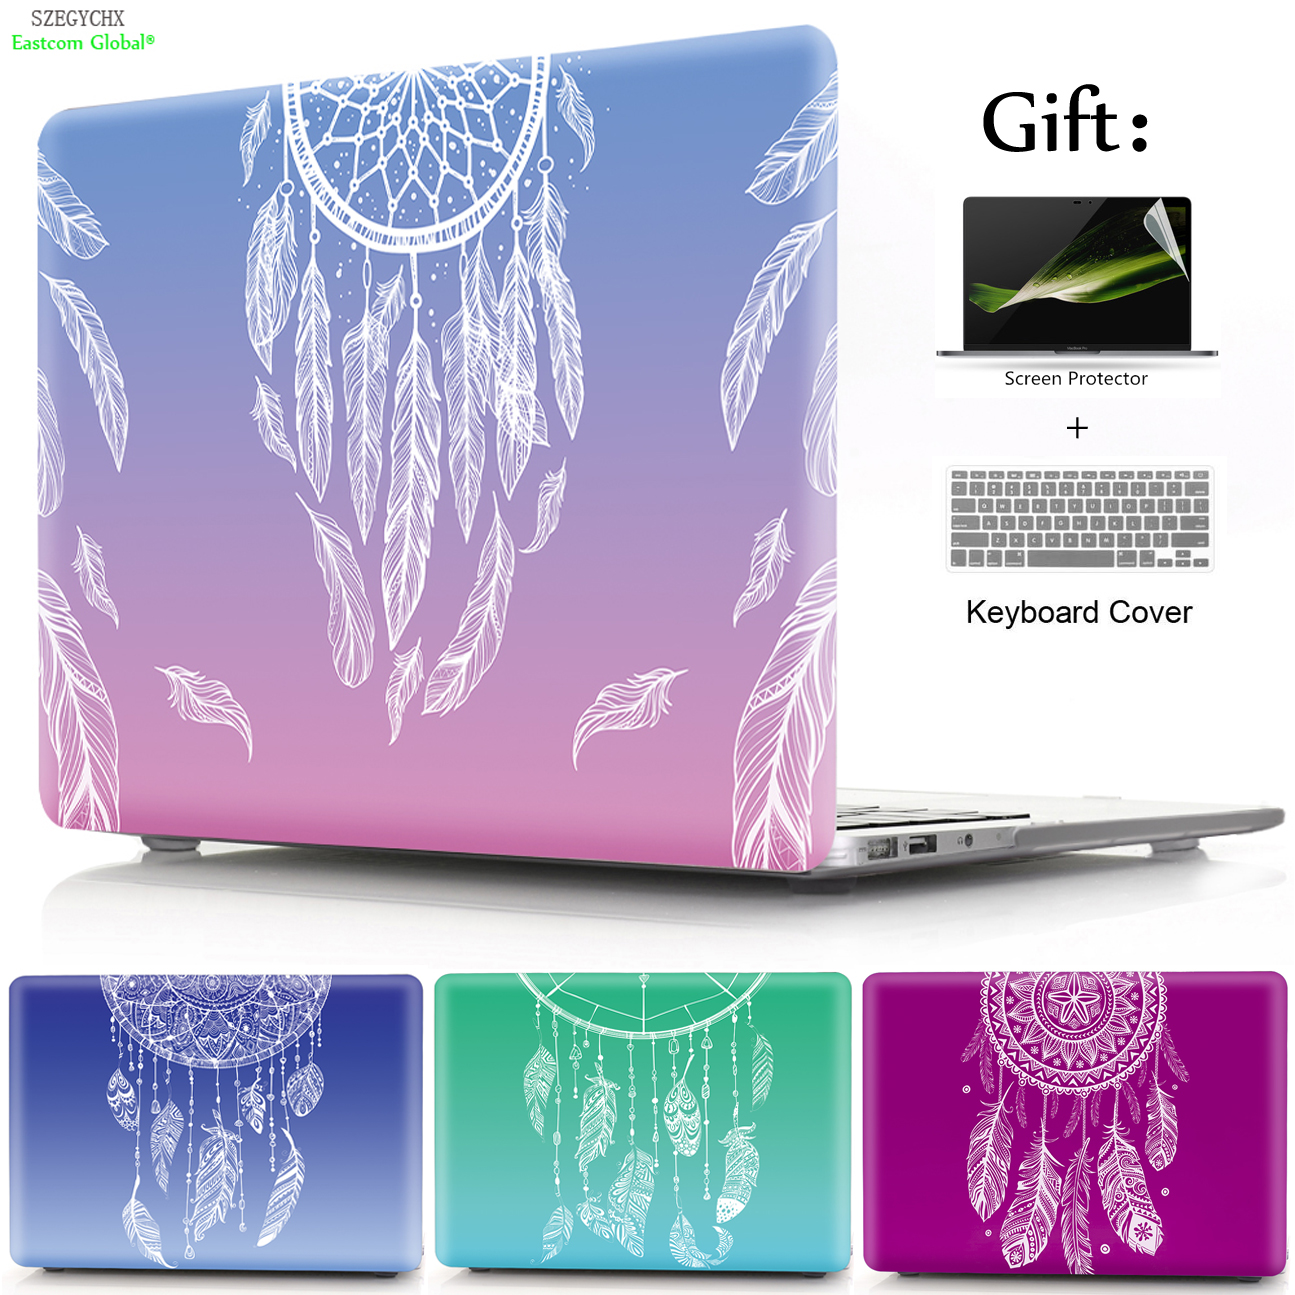 SZEGYCHX Dream Feather Pattern Laptop Shell Hard Case Cover For Macbook Air Pro Retina 11 12 13 15 13.3 inch with Touch Bar ...